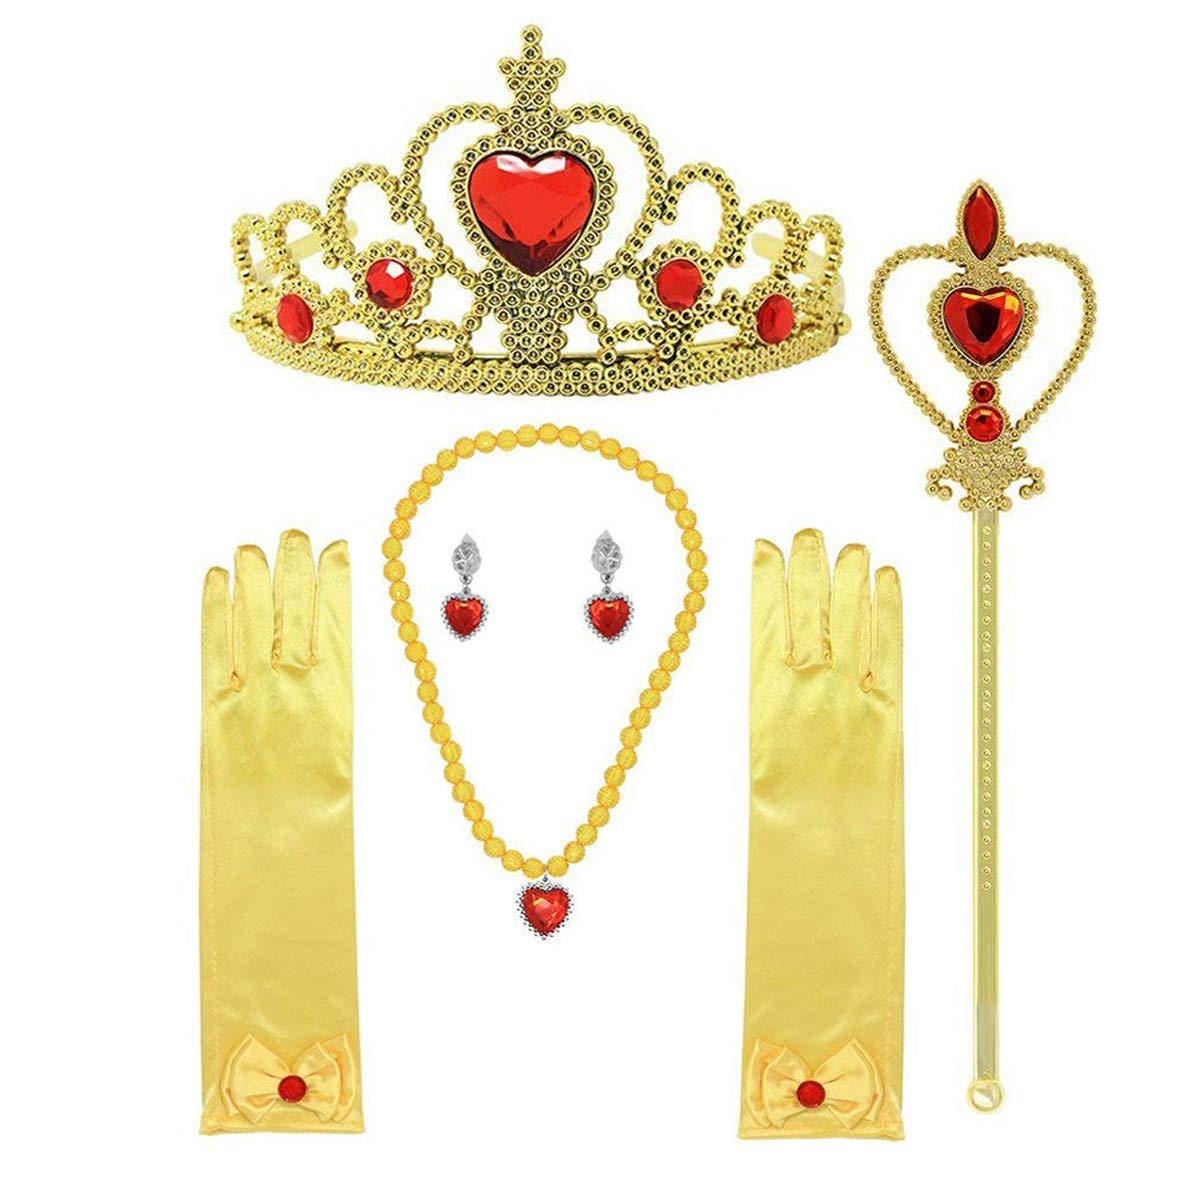 Princess Crown Wand Necklaces Gloves Tiara Birthday Gift Xmas Presents For Girls